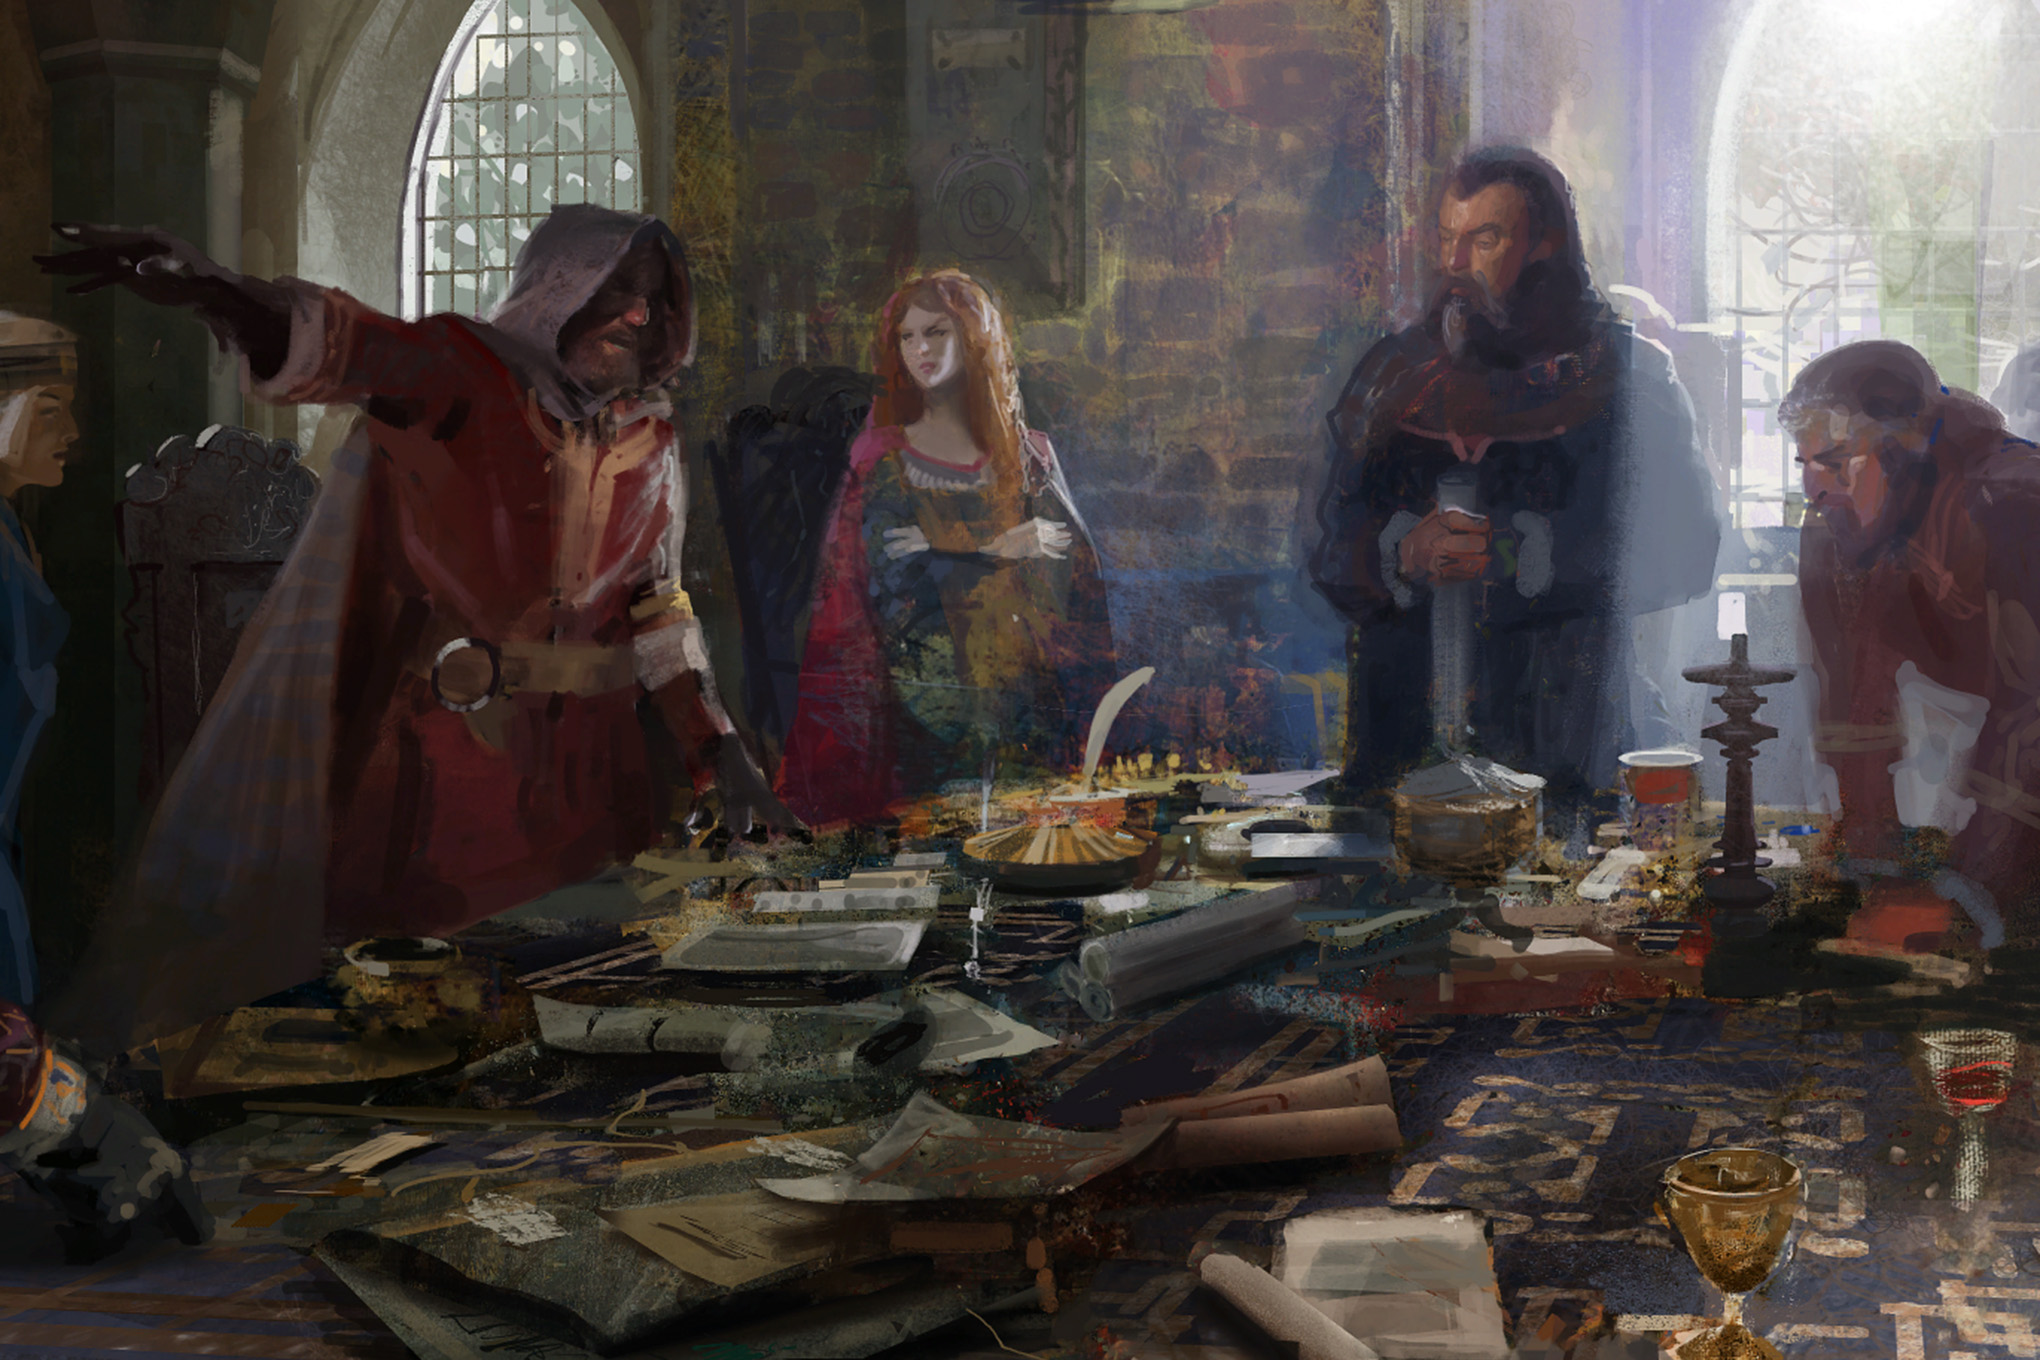 A king and his councilors contemplate war in a piece of key art from Crusader Kings 3.